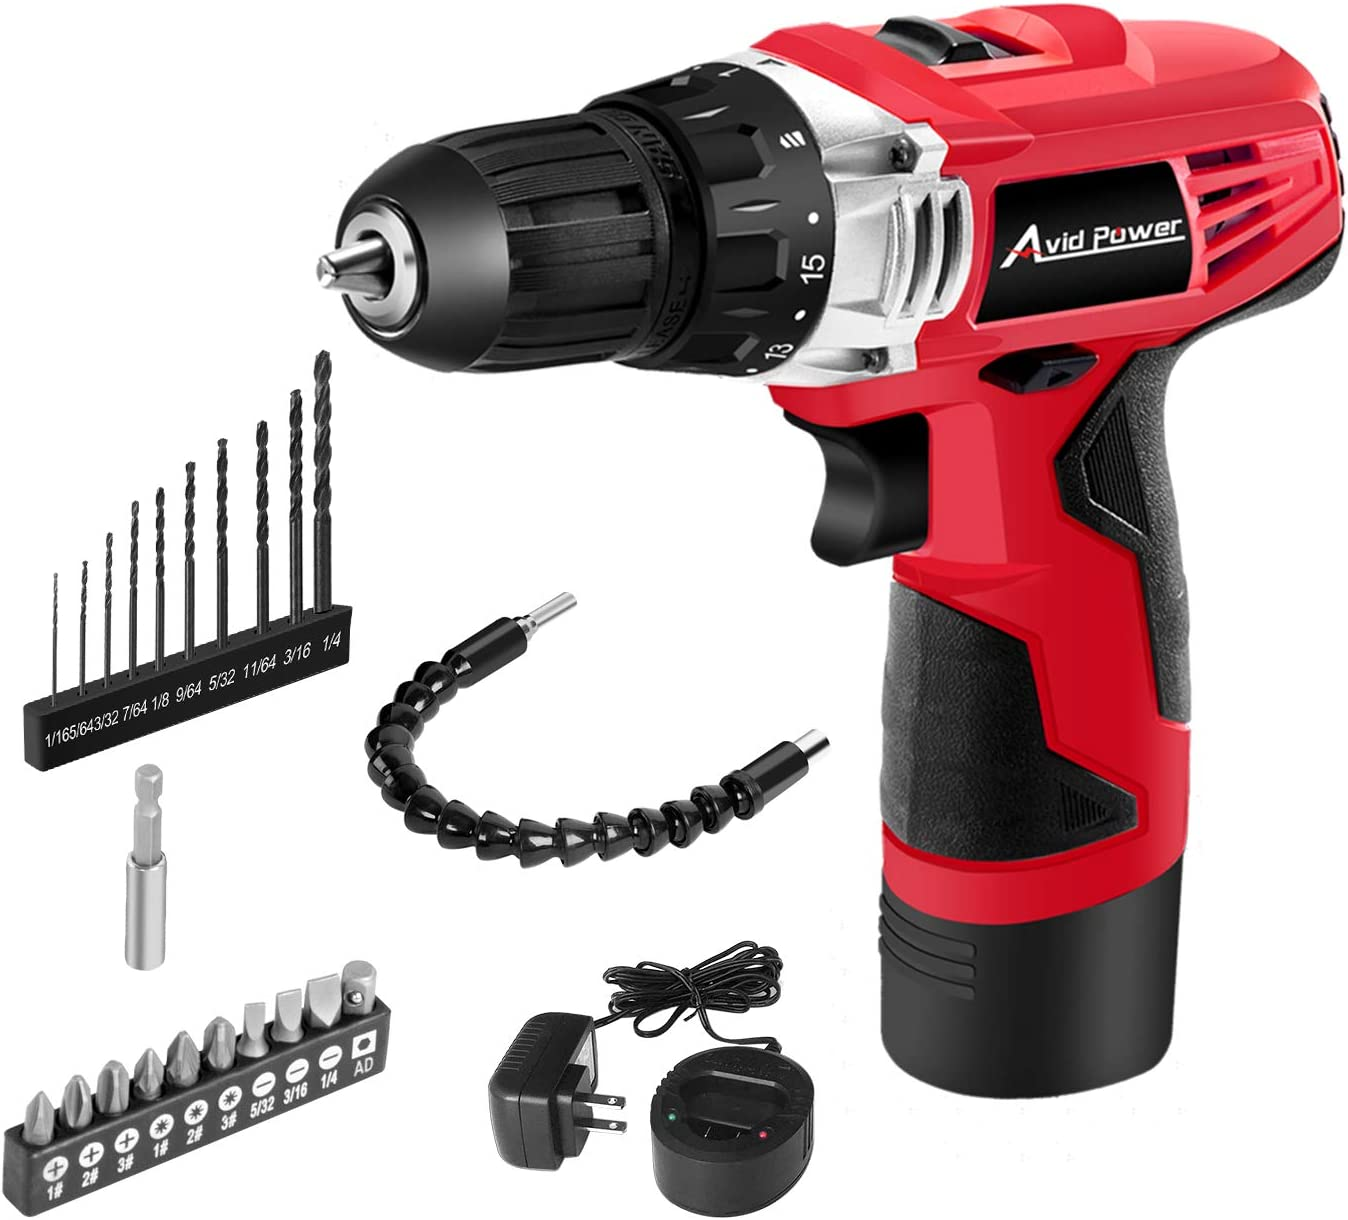 Avid Power 12V Cordless Drill, Power Drill Set with 22pcs Impact Driver Drill Bits, 15 1 Torque Setting, 3 8 inches Keyless Chuck, 2 Variable Speed